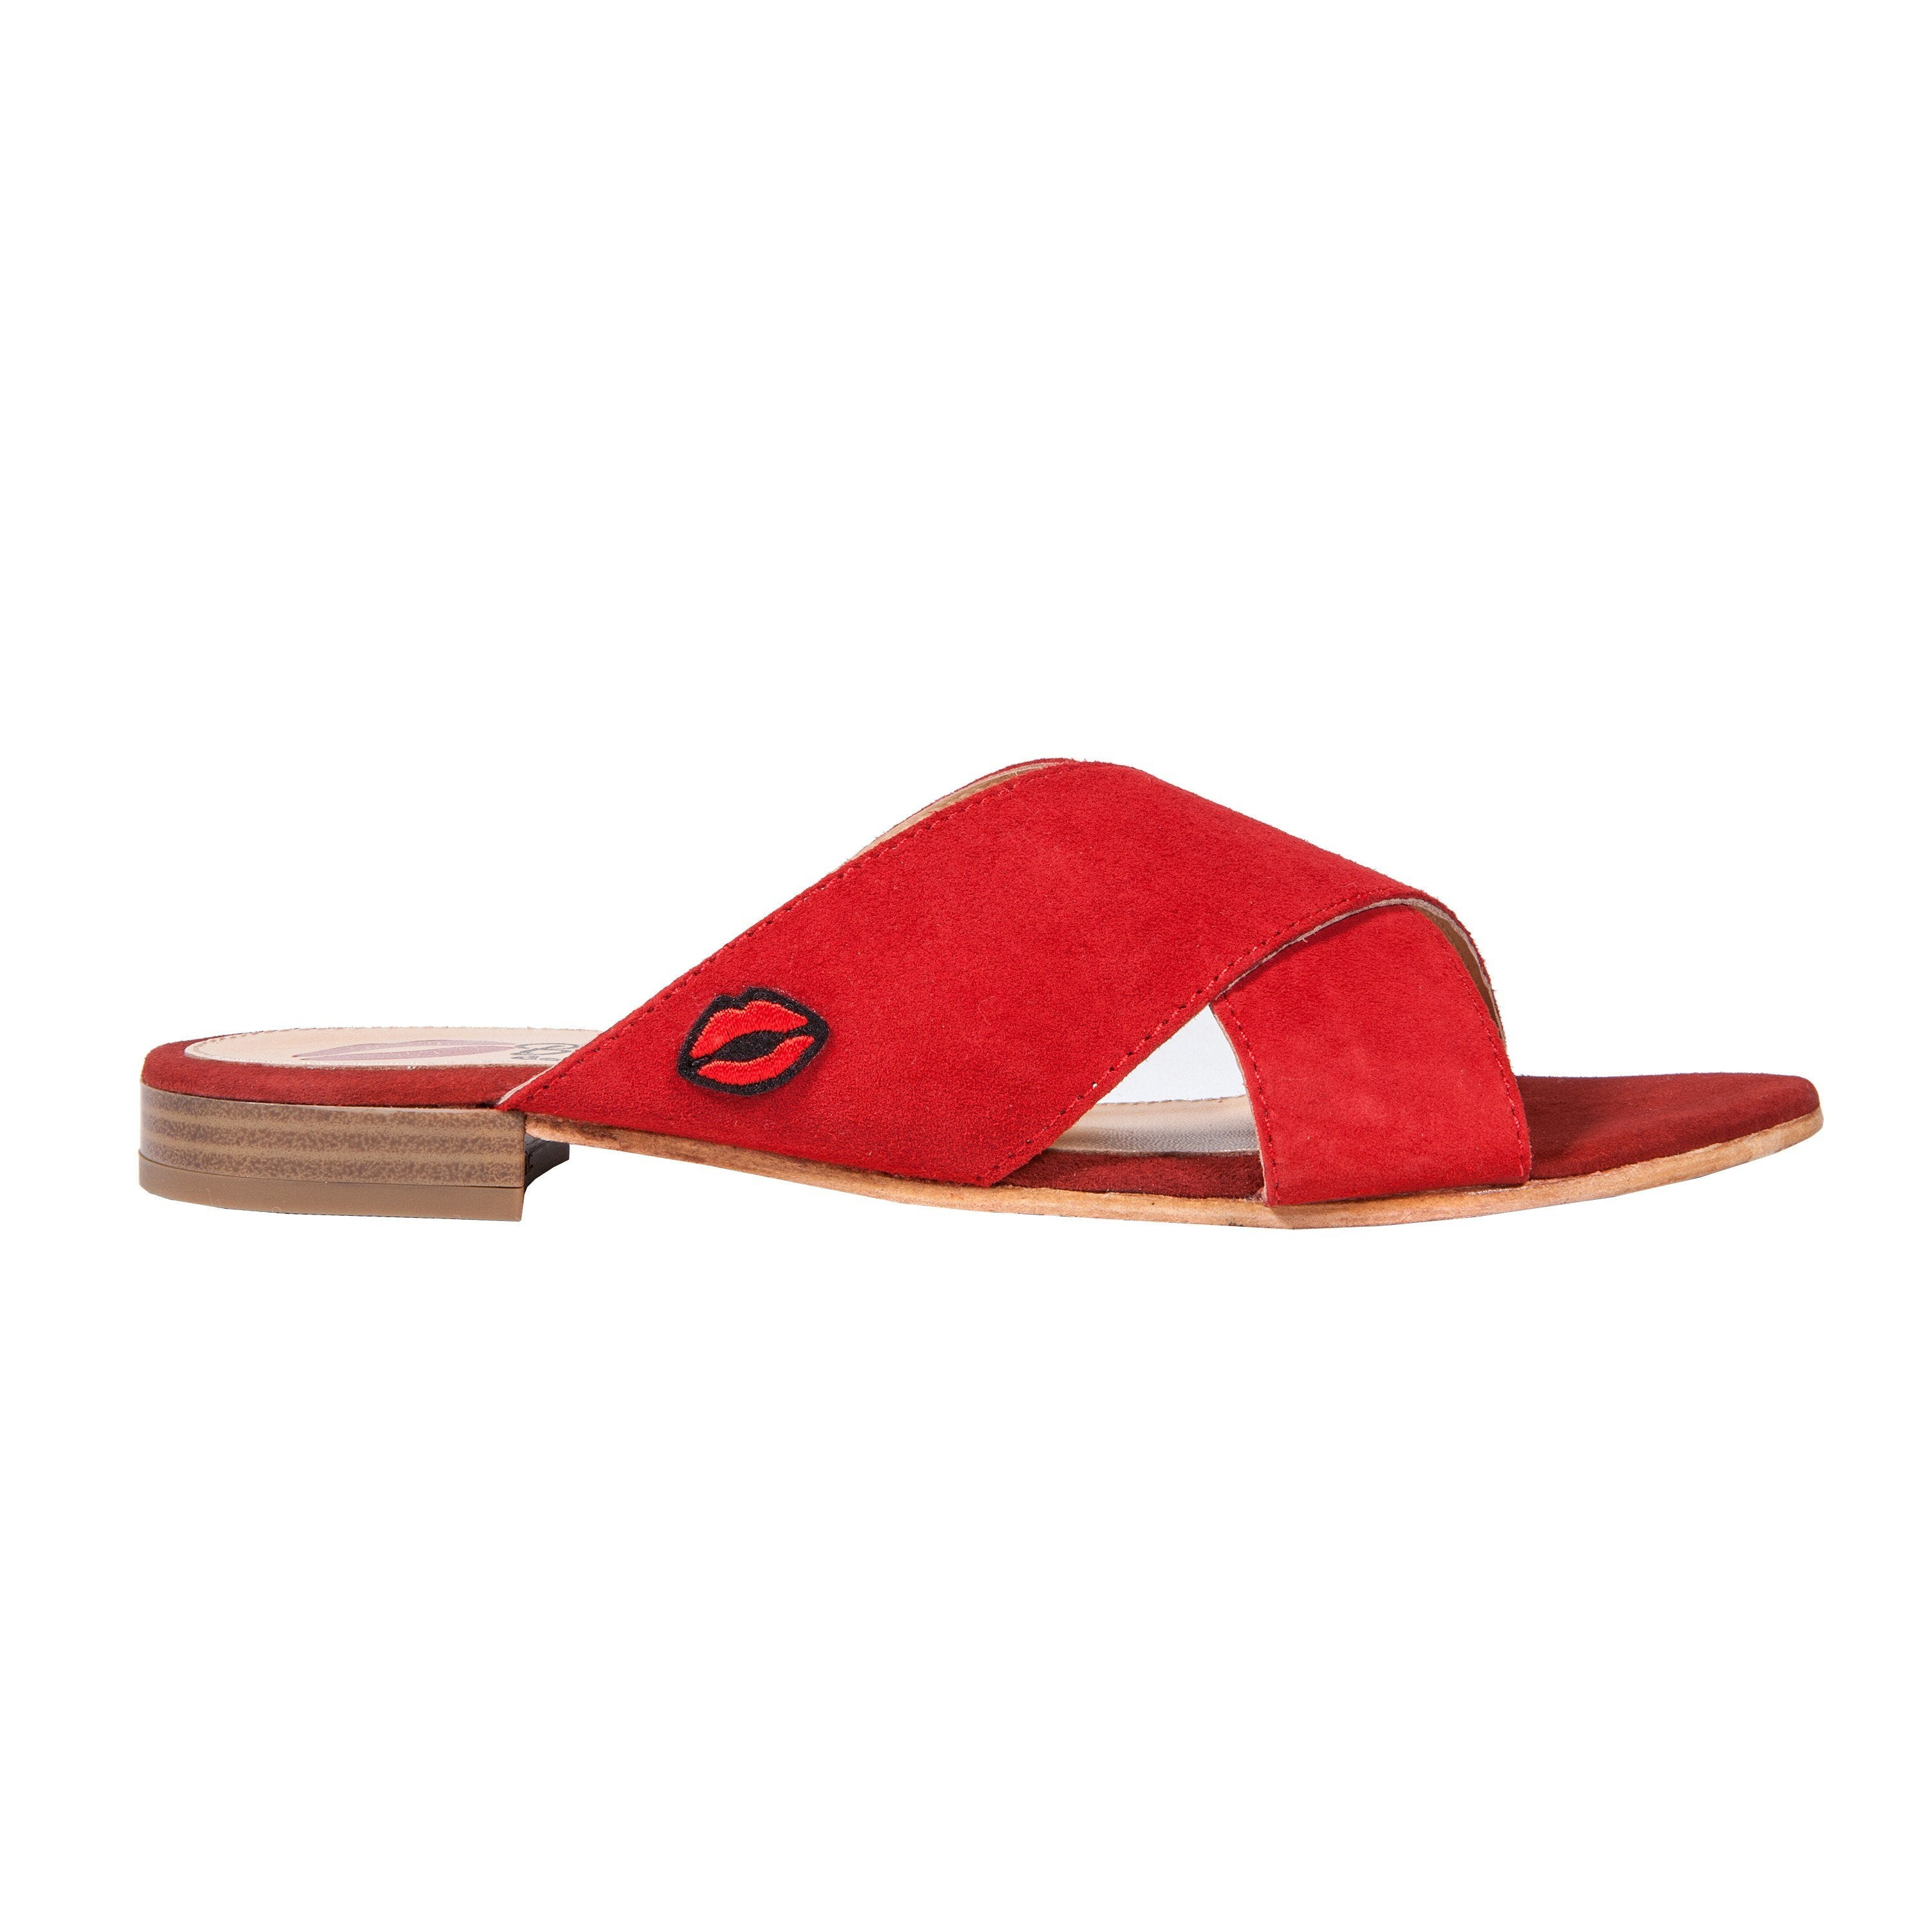 Sandales-Grazia  Taille : 41 - FR